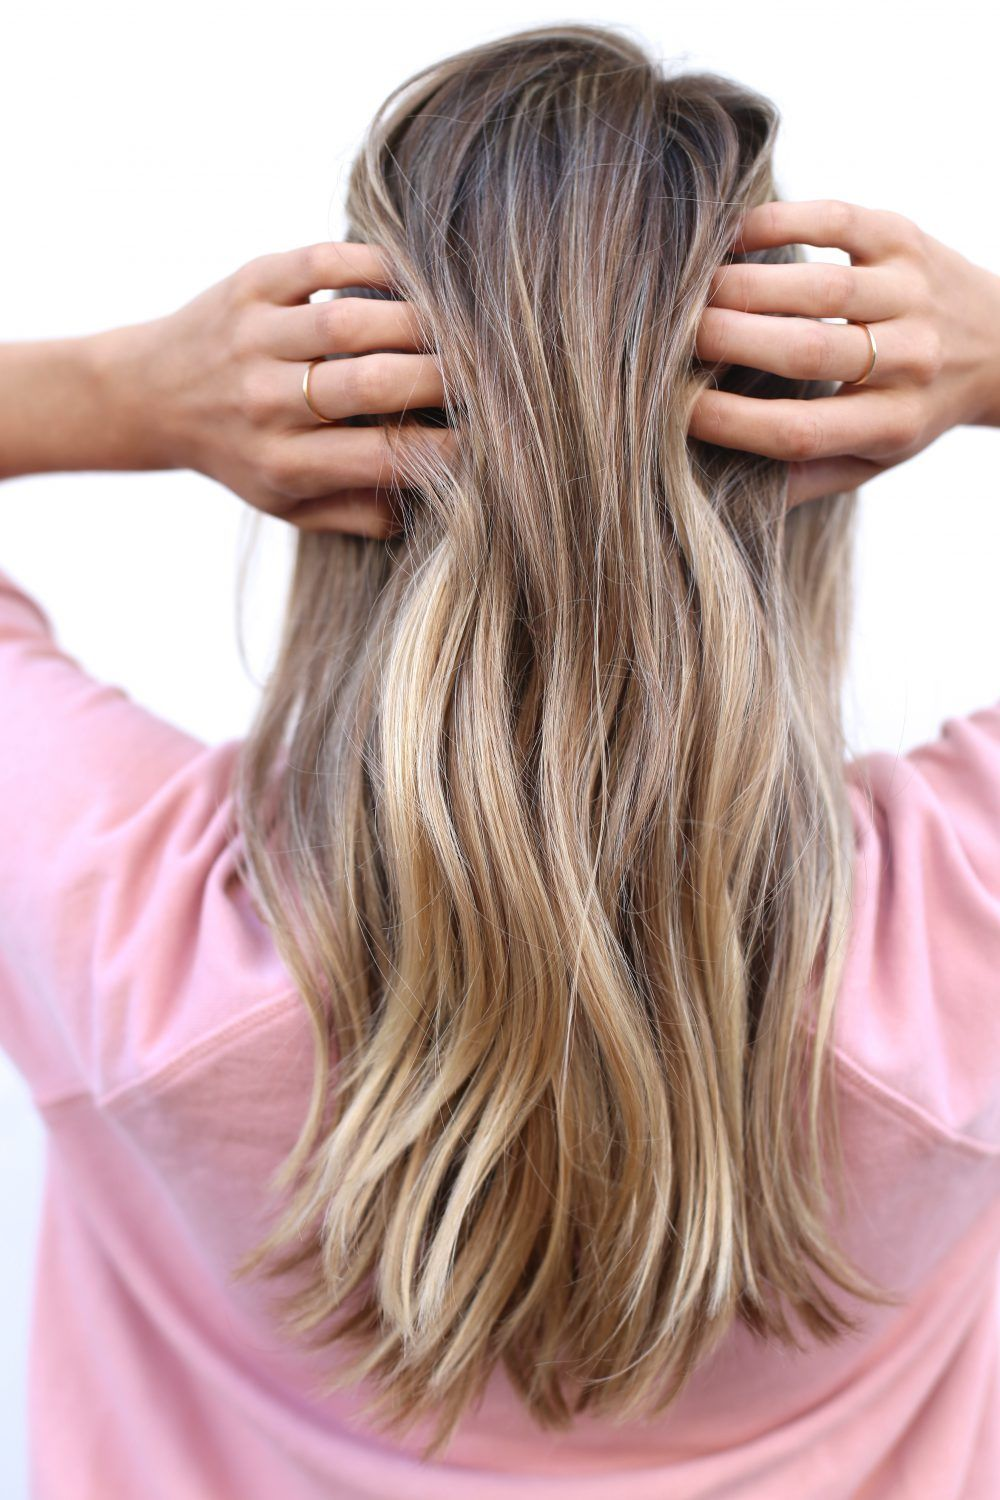 Loose beach waves using Mermaid Hair products | Adorned With Love